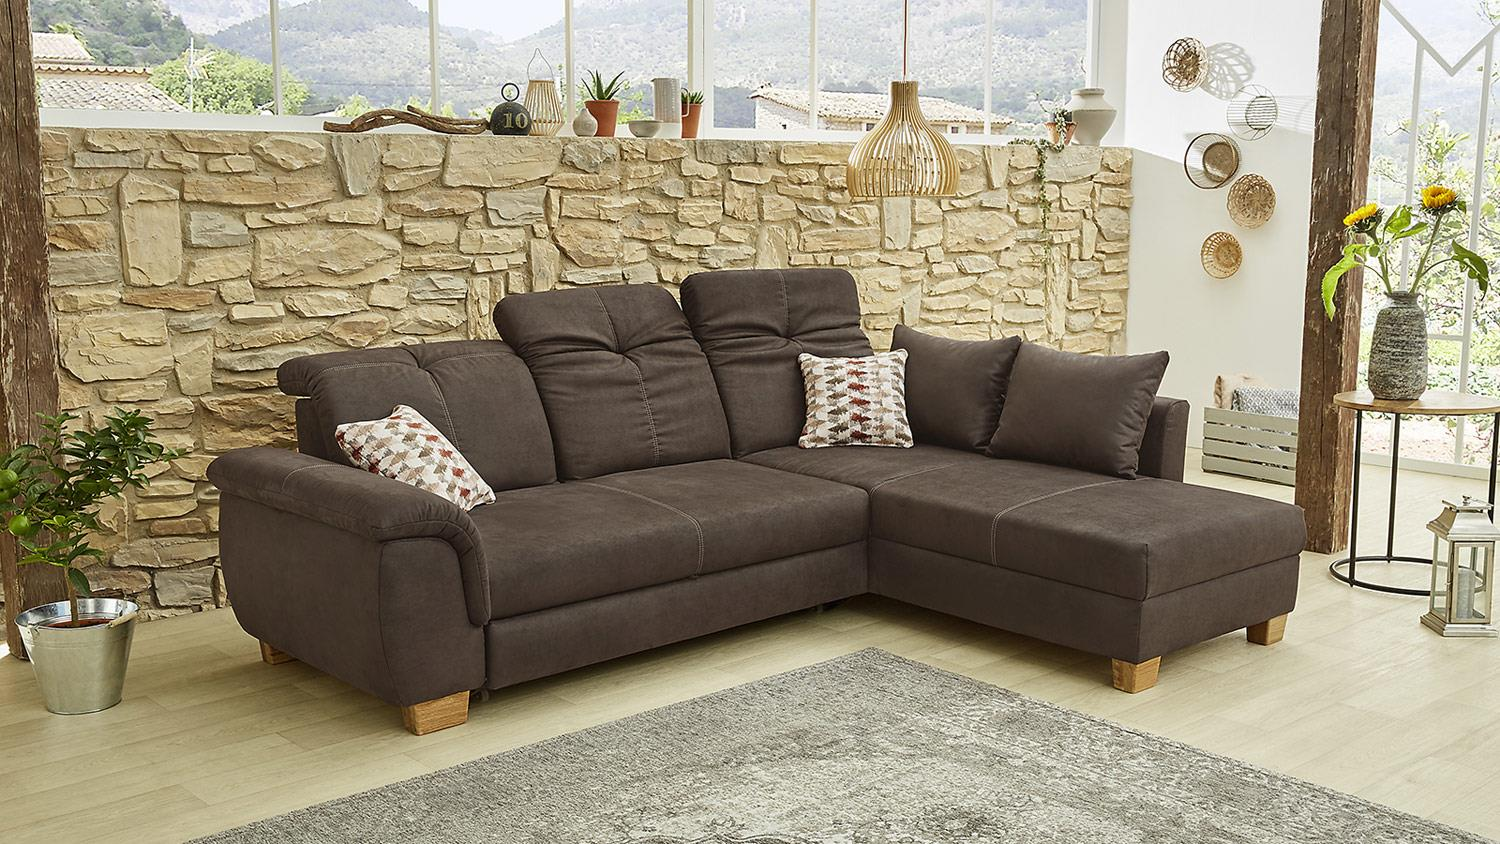 ecksofa country sofa wohnlandschaft in antik braun mit funktion 270 cm. Black Bedroom Furniture Sets. Home Design Ideas